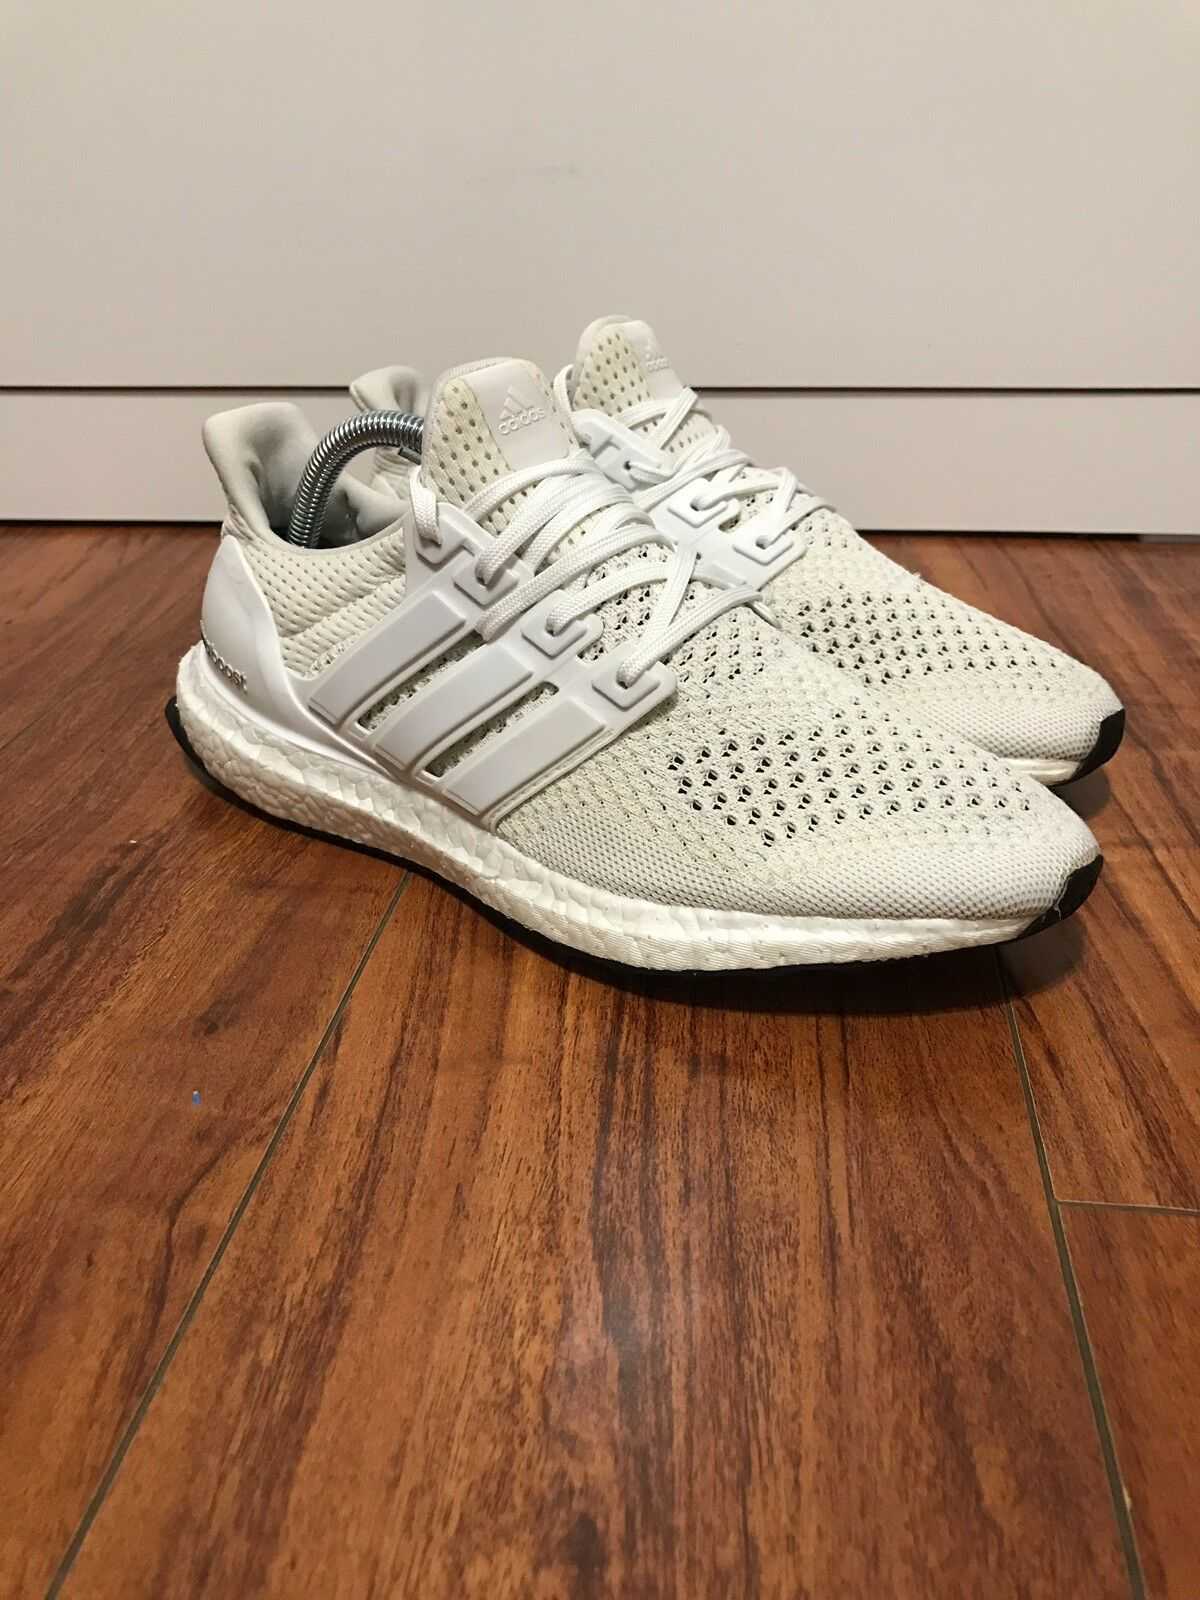 Adidas Ultra Boost 1.0 Triple White OG Size 8.5 Preowned